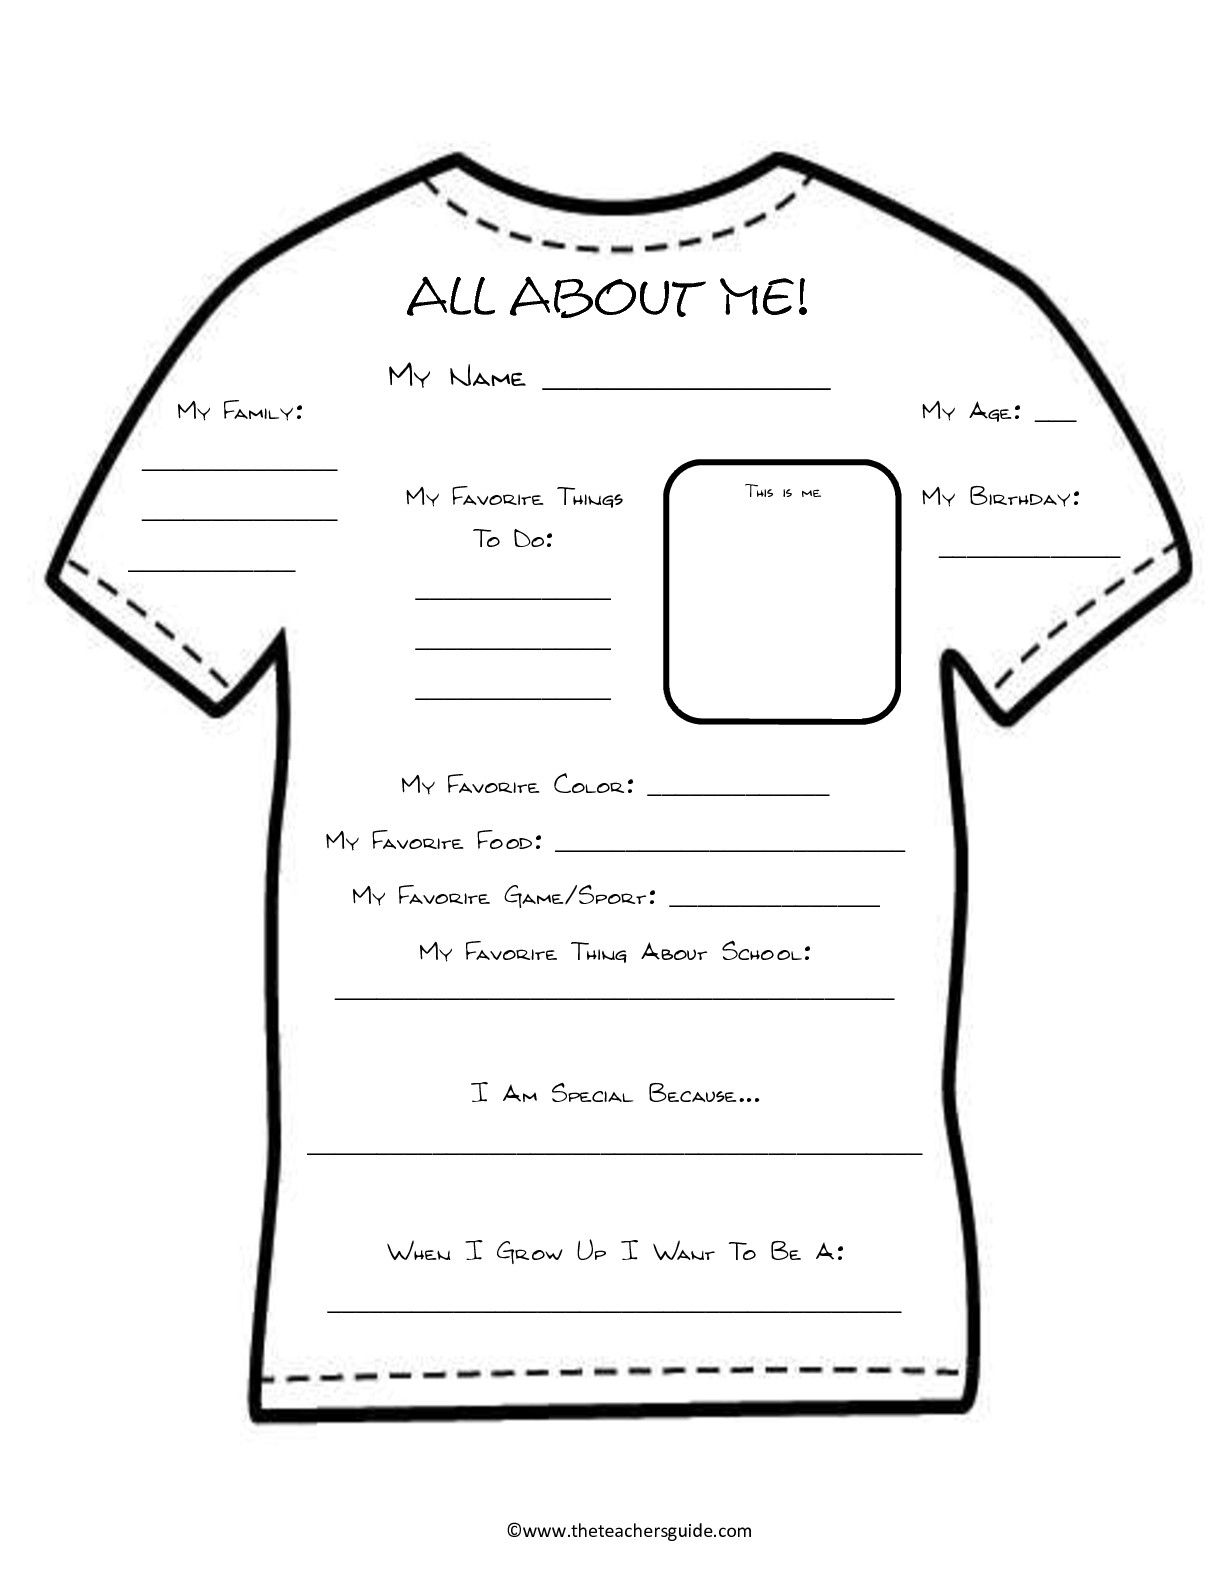 13 Best Images Of What I Like About Me Worksheet